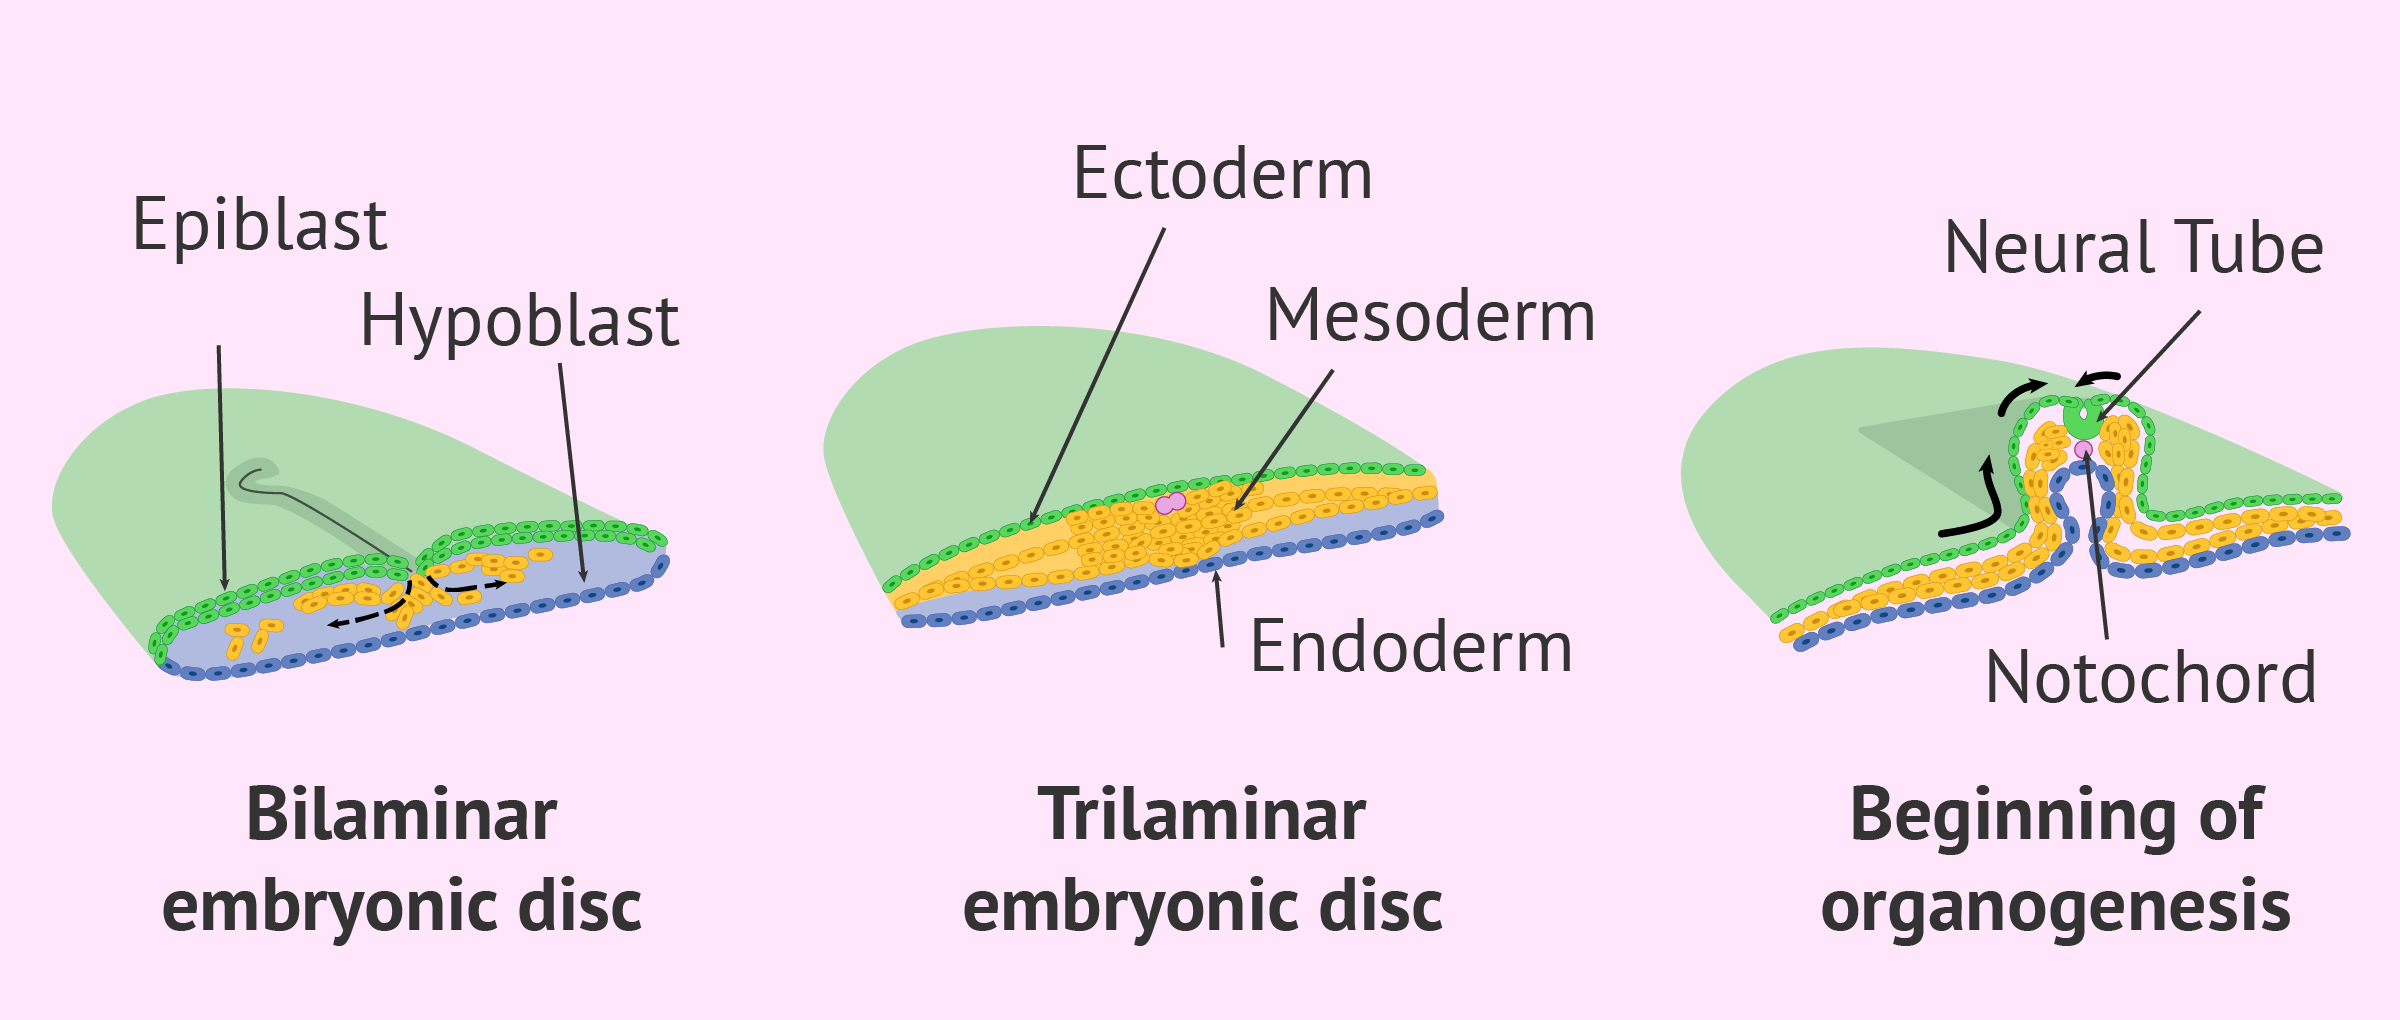 Trilaminar embryonic disc formation